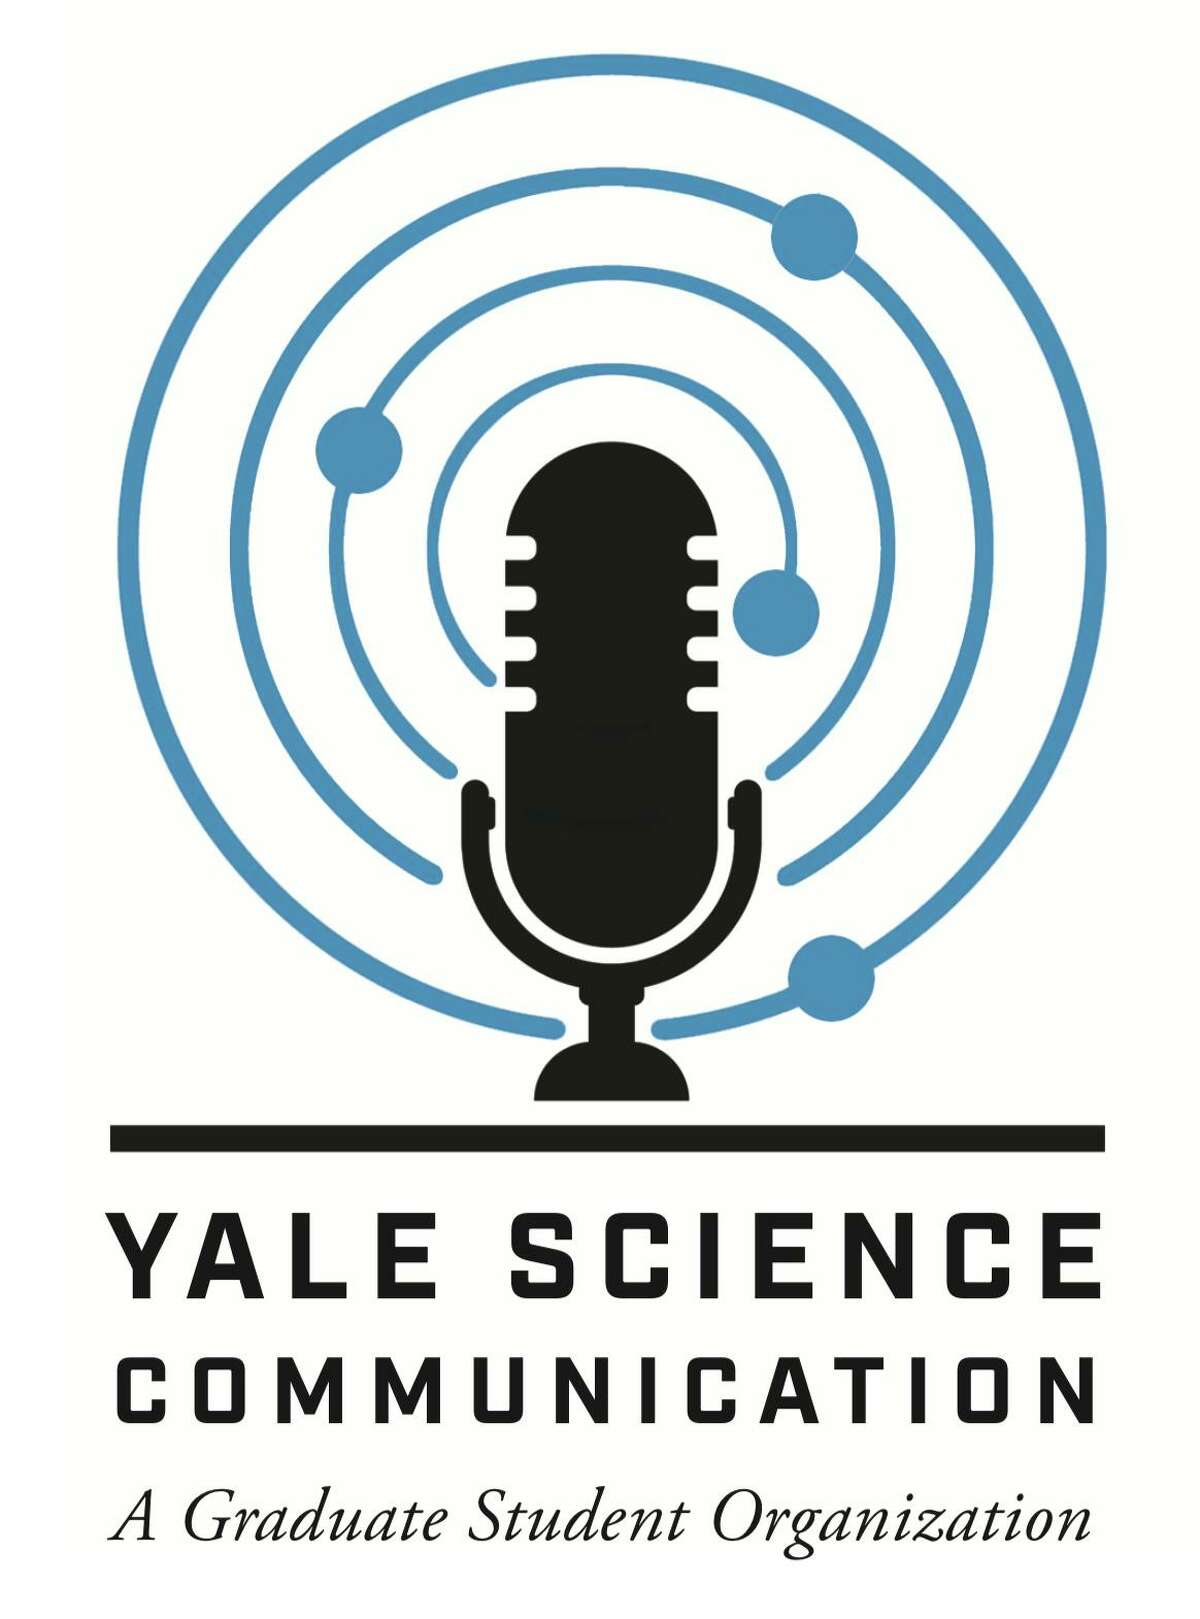 Yale Science Communication returns to New Canaan Library, presenting a live webinar in which they explore the nature of microbes Thursday, Sept. 17, at 7 p.m.